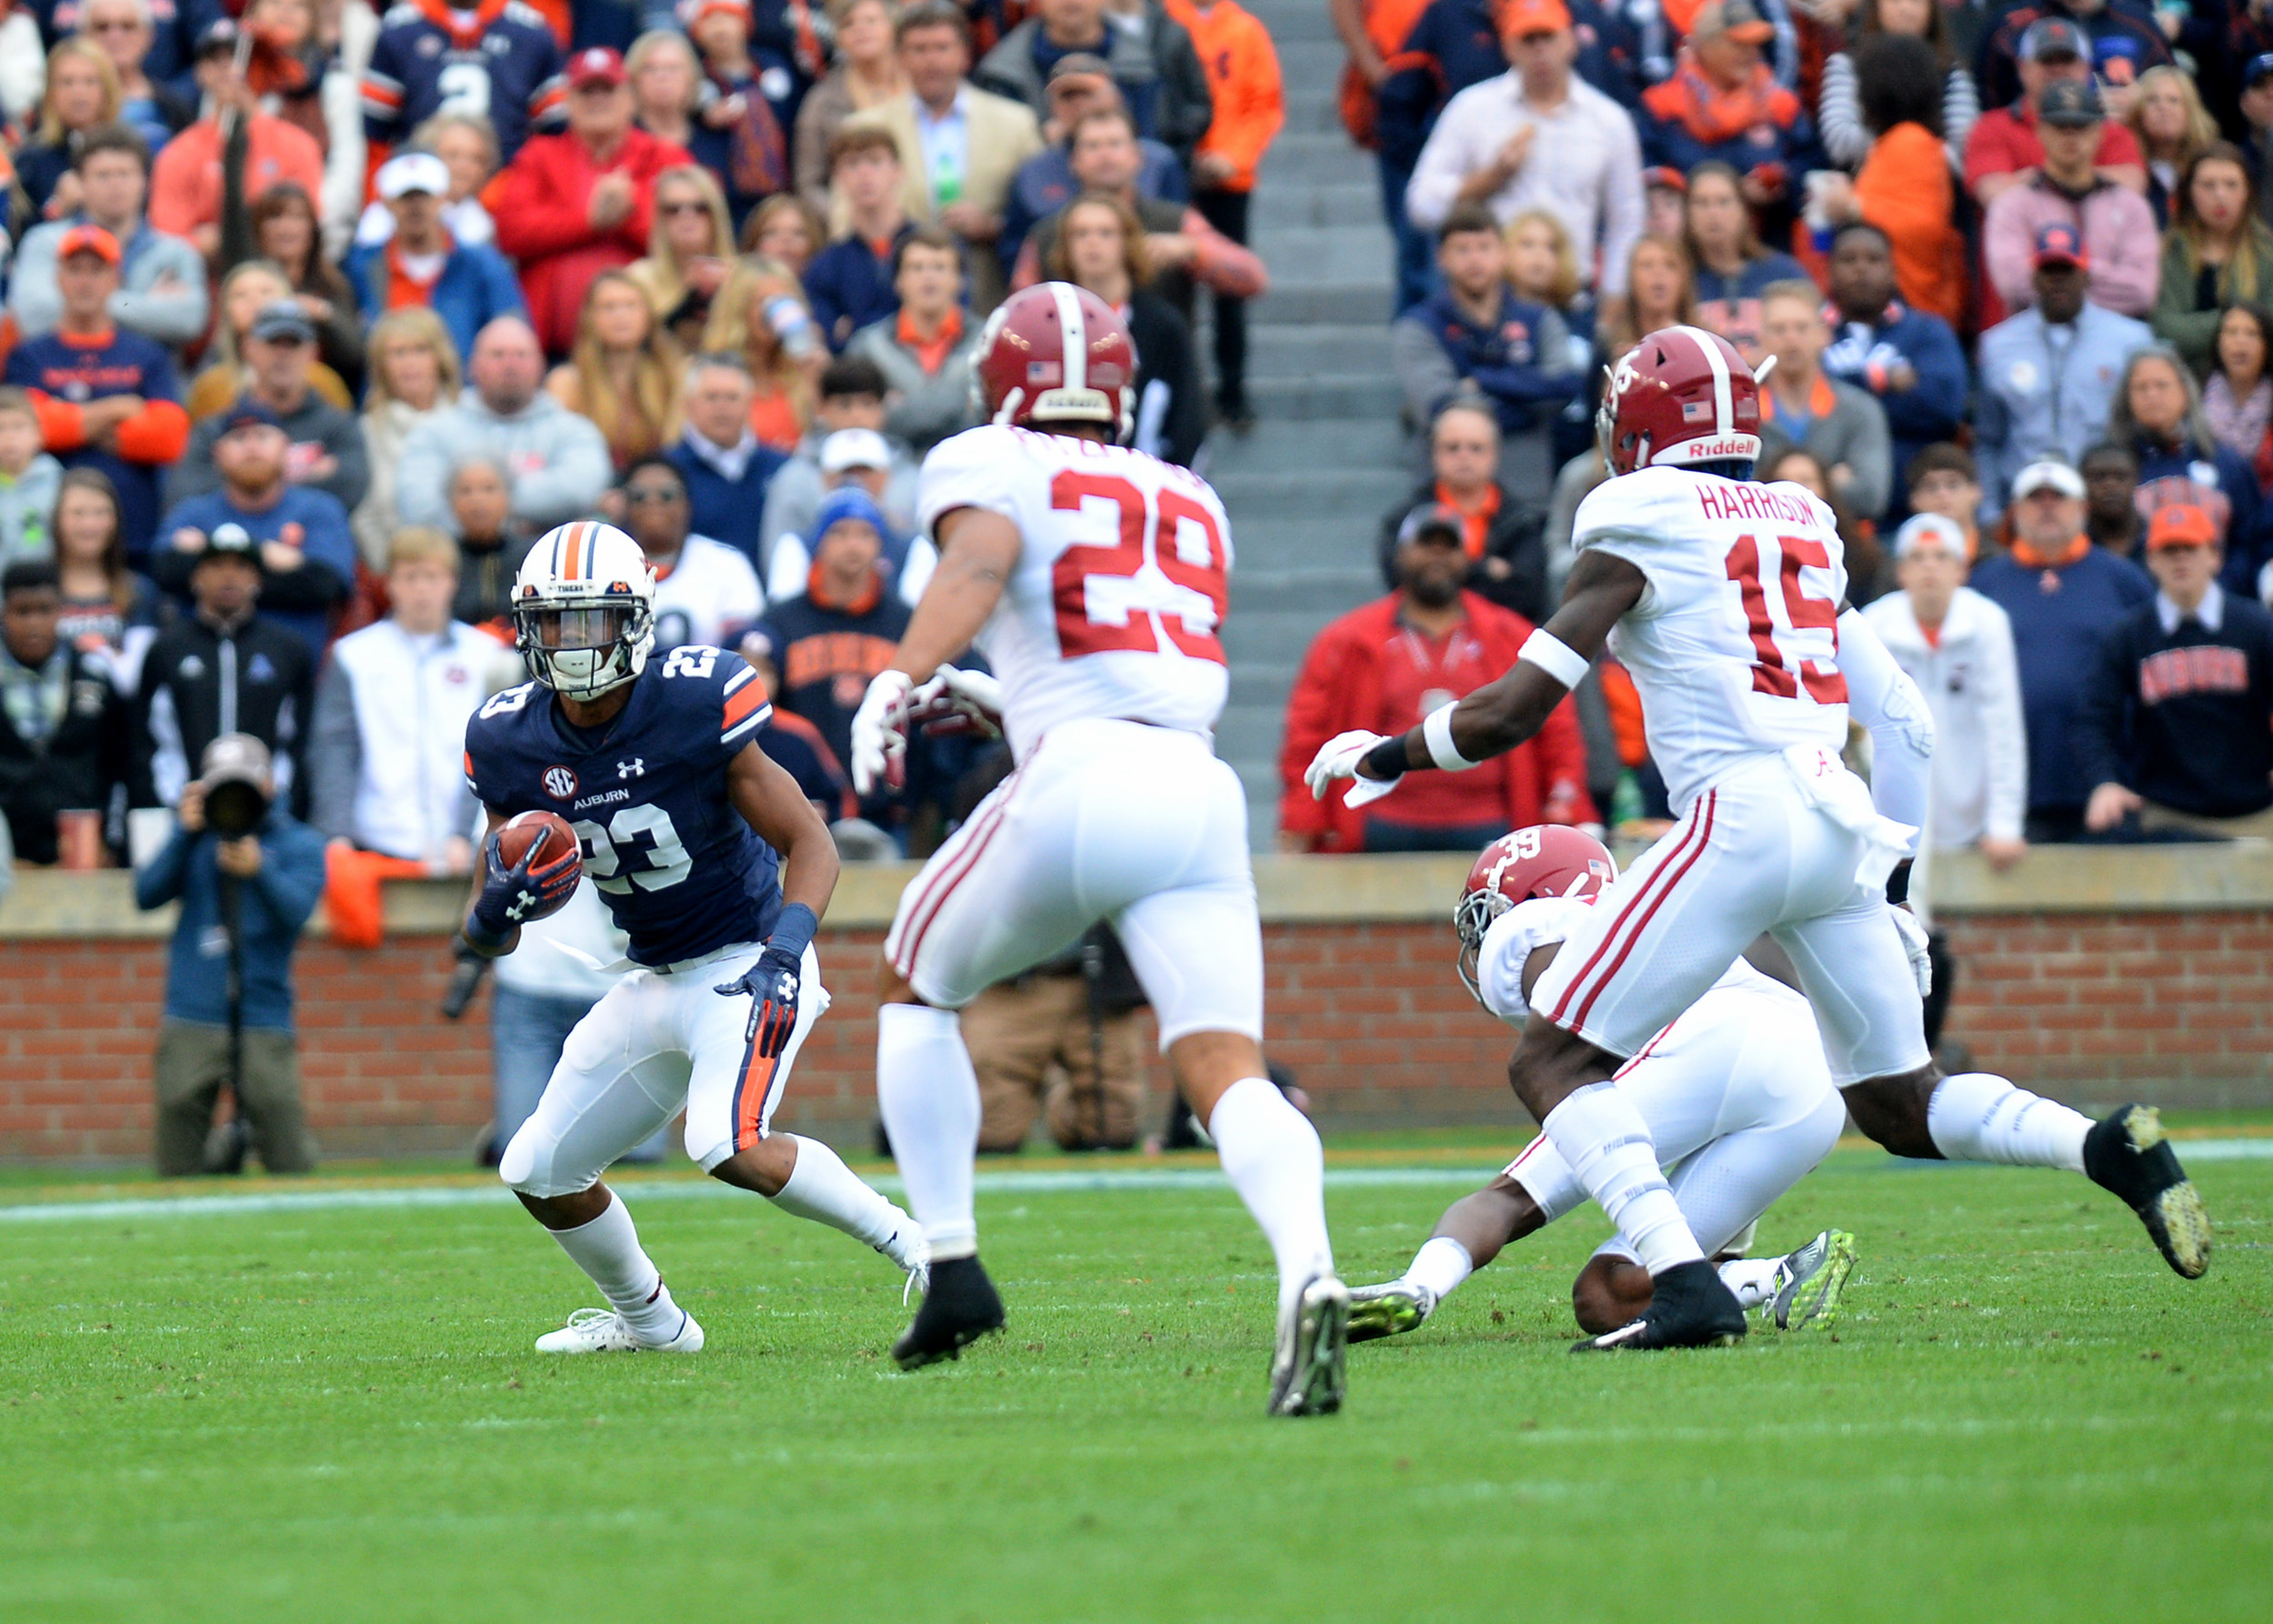 Auburn Tigers wide receiver Ryan Davis (23) on a carry in  the first half of the NCAA football game between the Alabama Crimson Tide and the Auburn Tigers on Nov. 25, 2017, at Jordan-Hare Stadium in Auburn, Ala. (Photo by Jeff Johnsey)